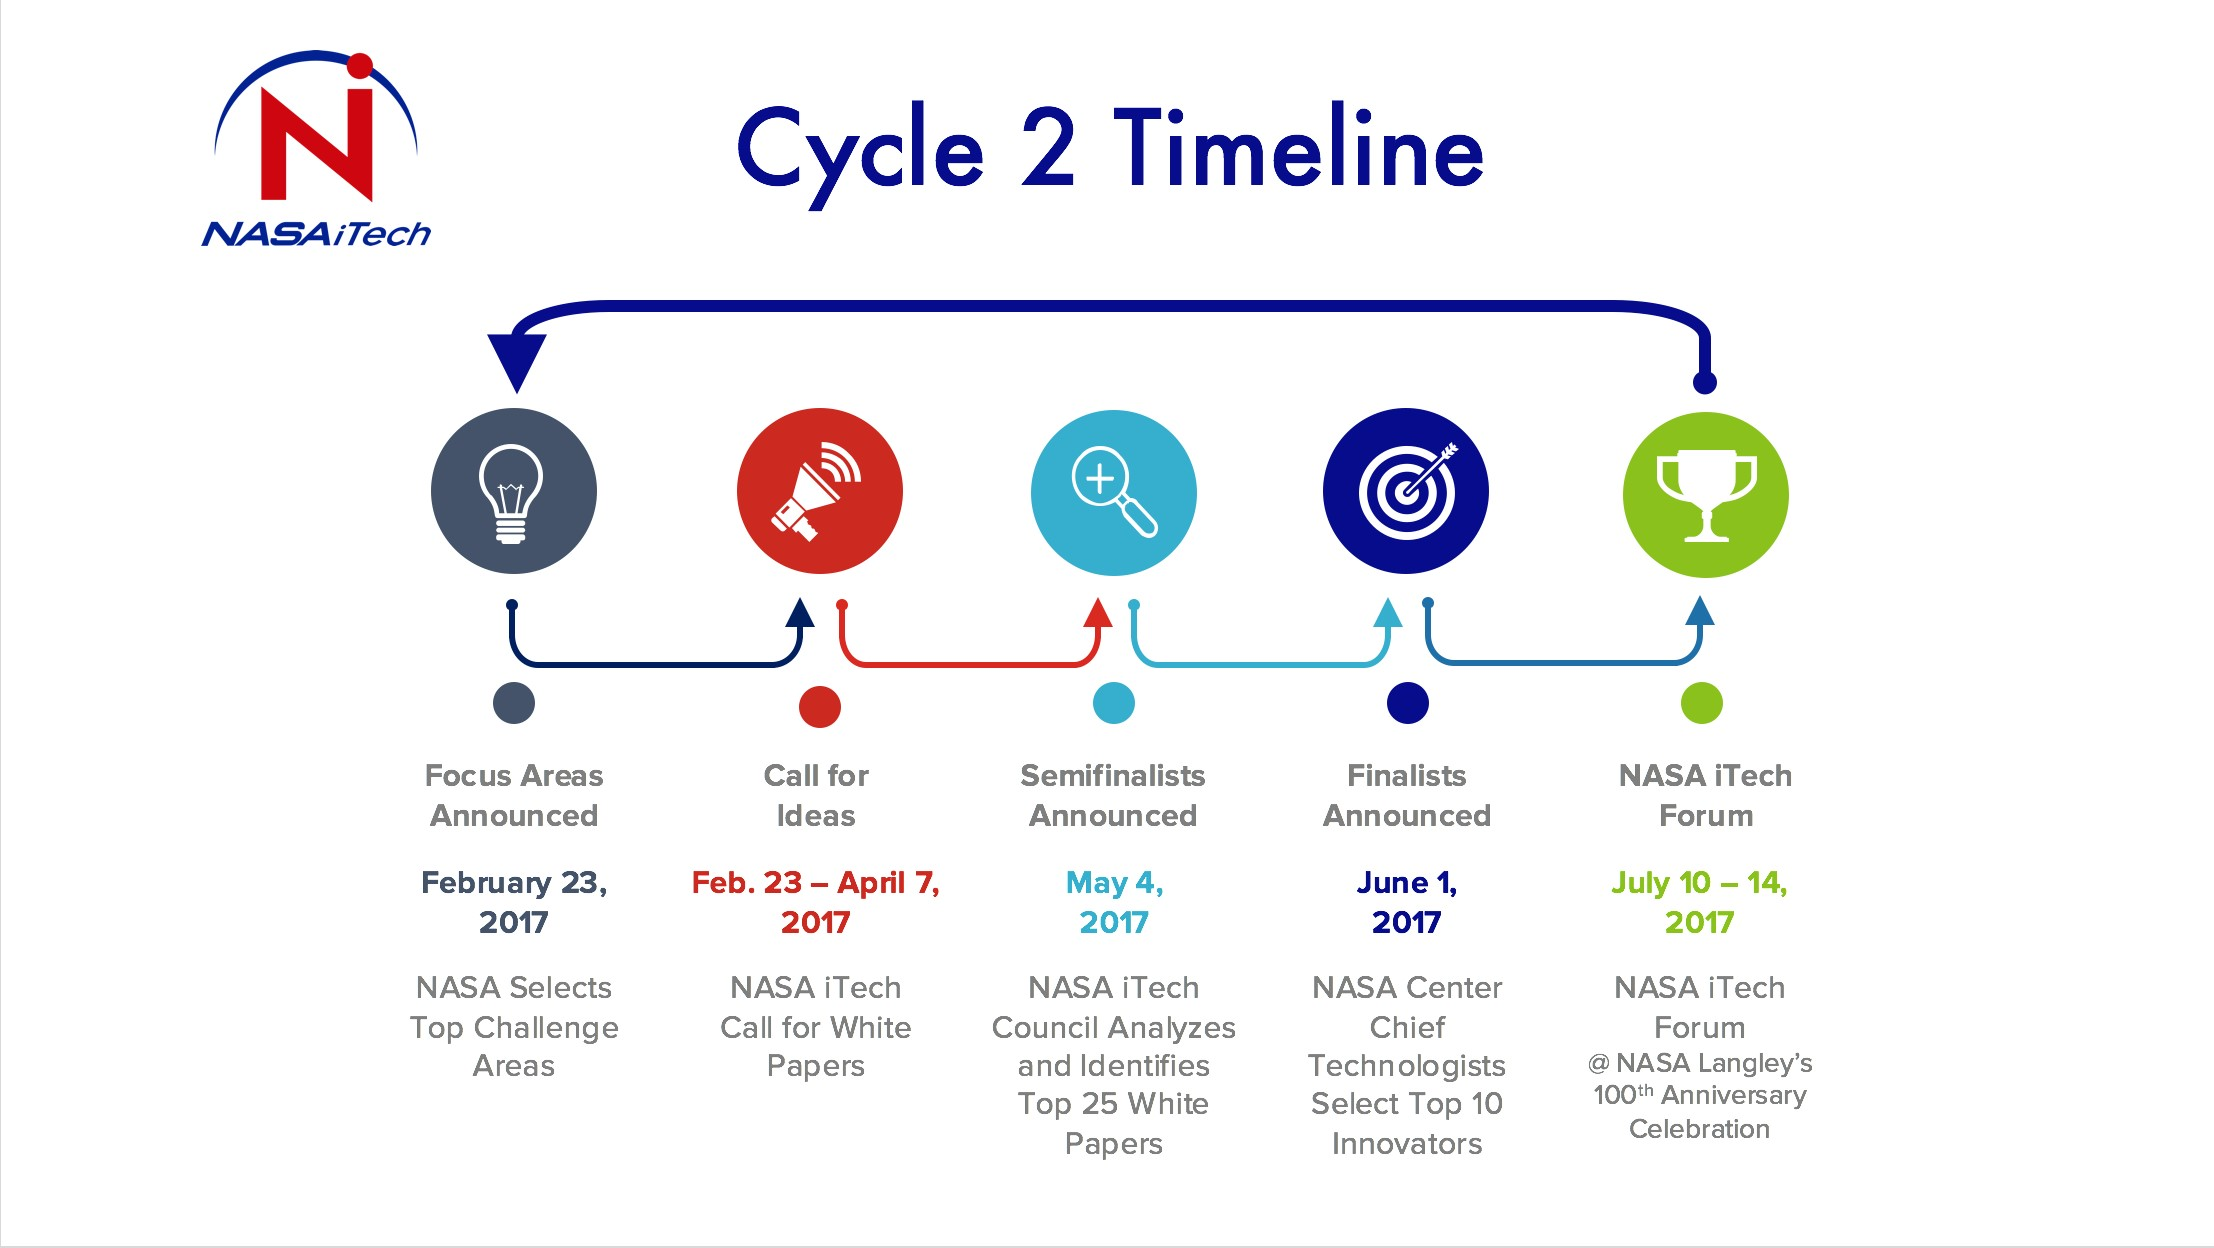 seeks innovative space exploration technology ideas nasa itech cycle 2 timeline